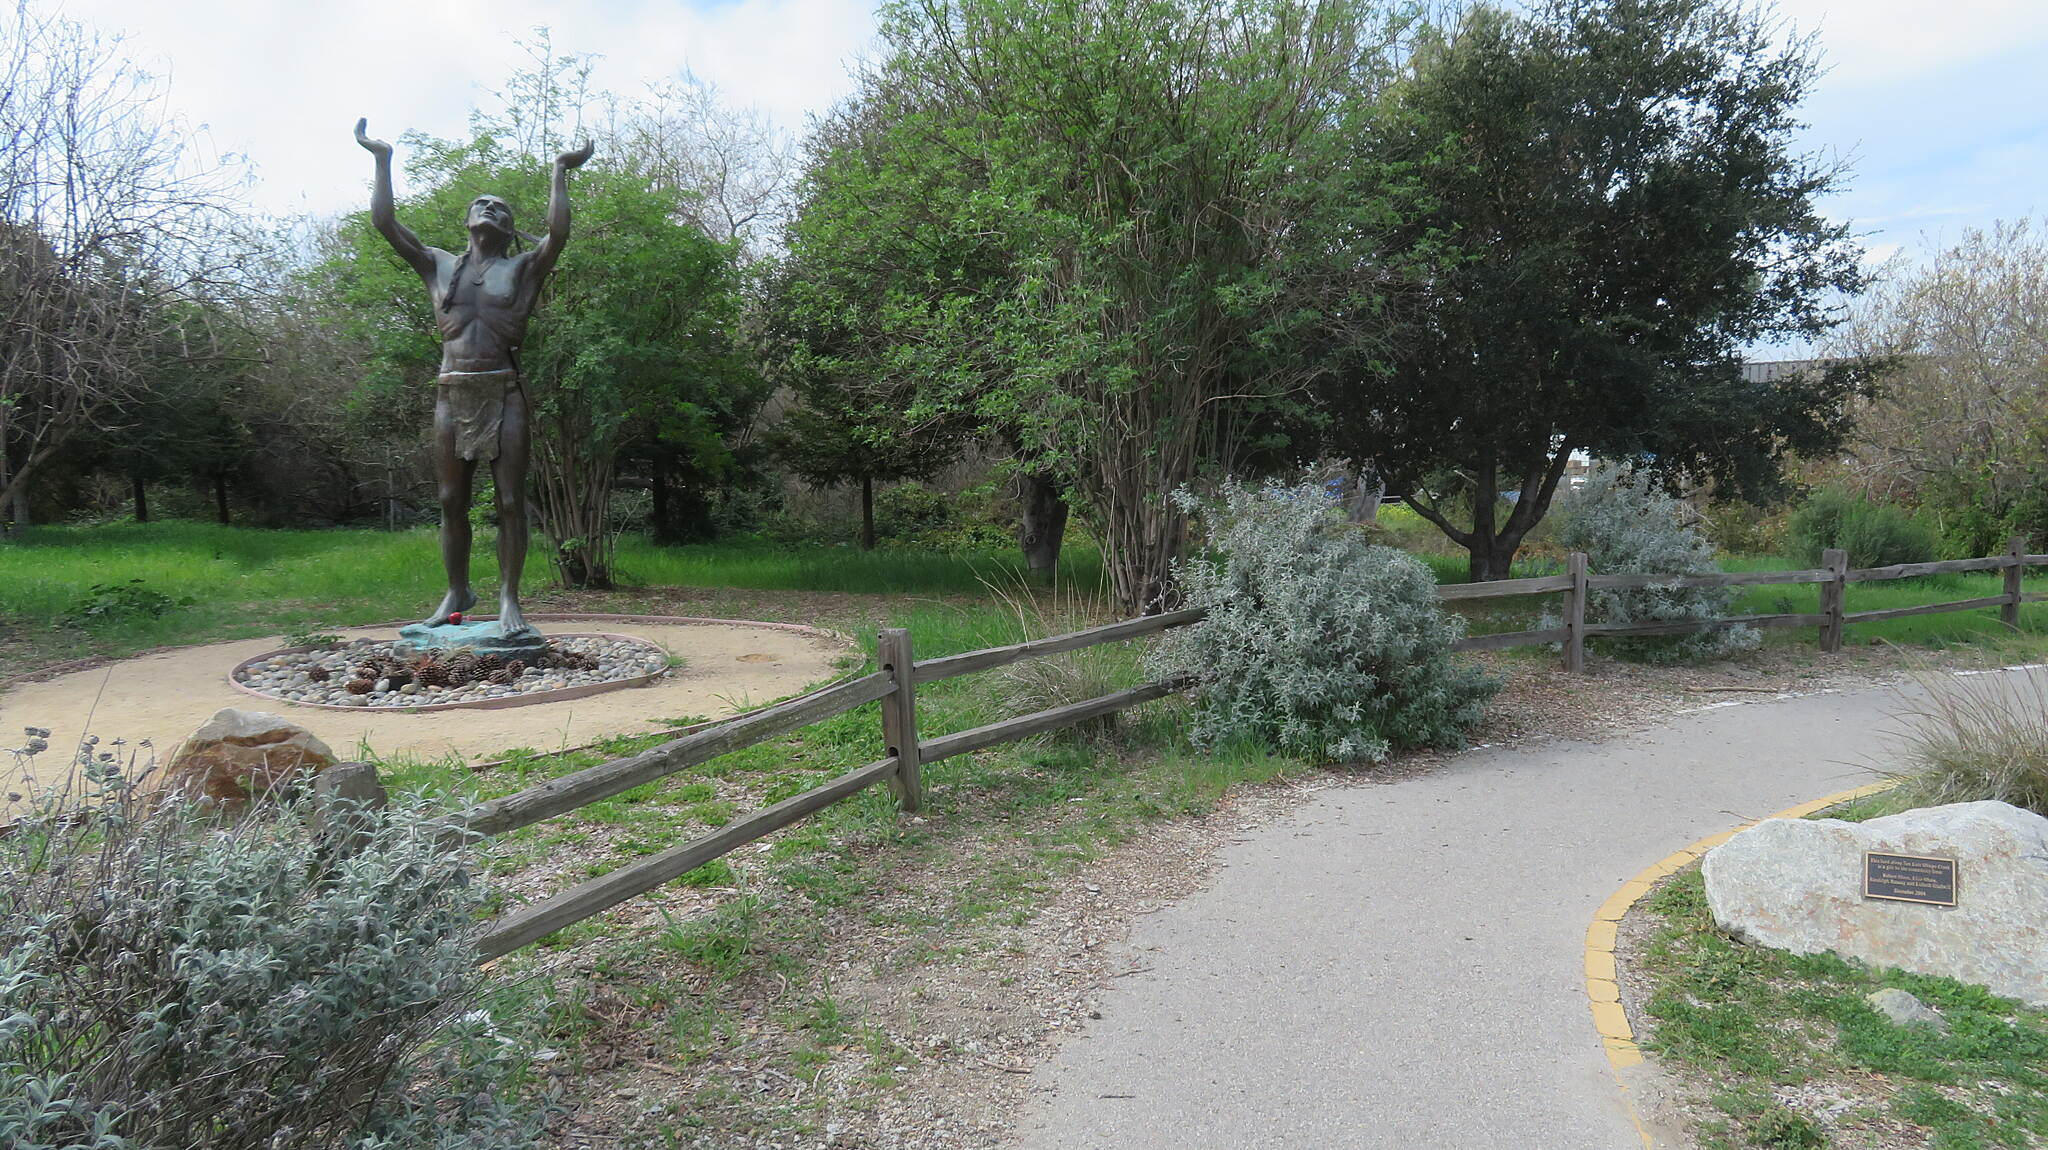 Bob Jones City to the Sea Trail Bob Jones City to the Sea Trail - SLO  'Oh Great Spirit' statue at start of trail.